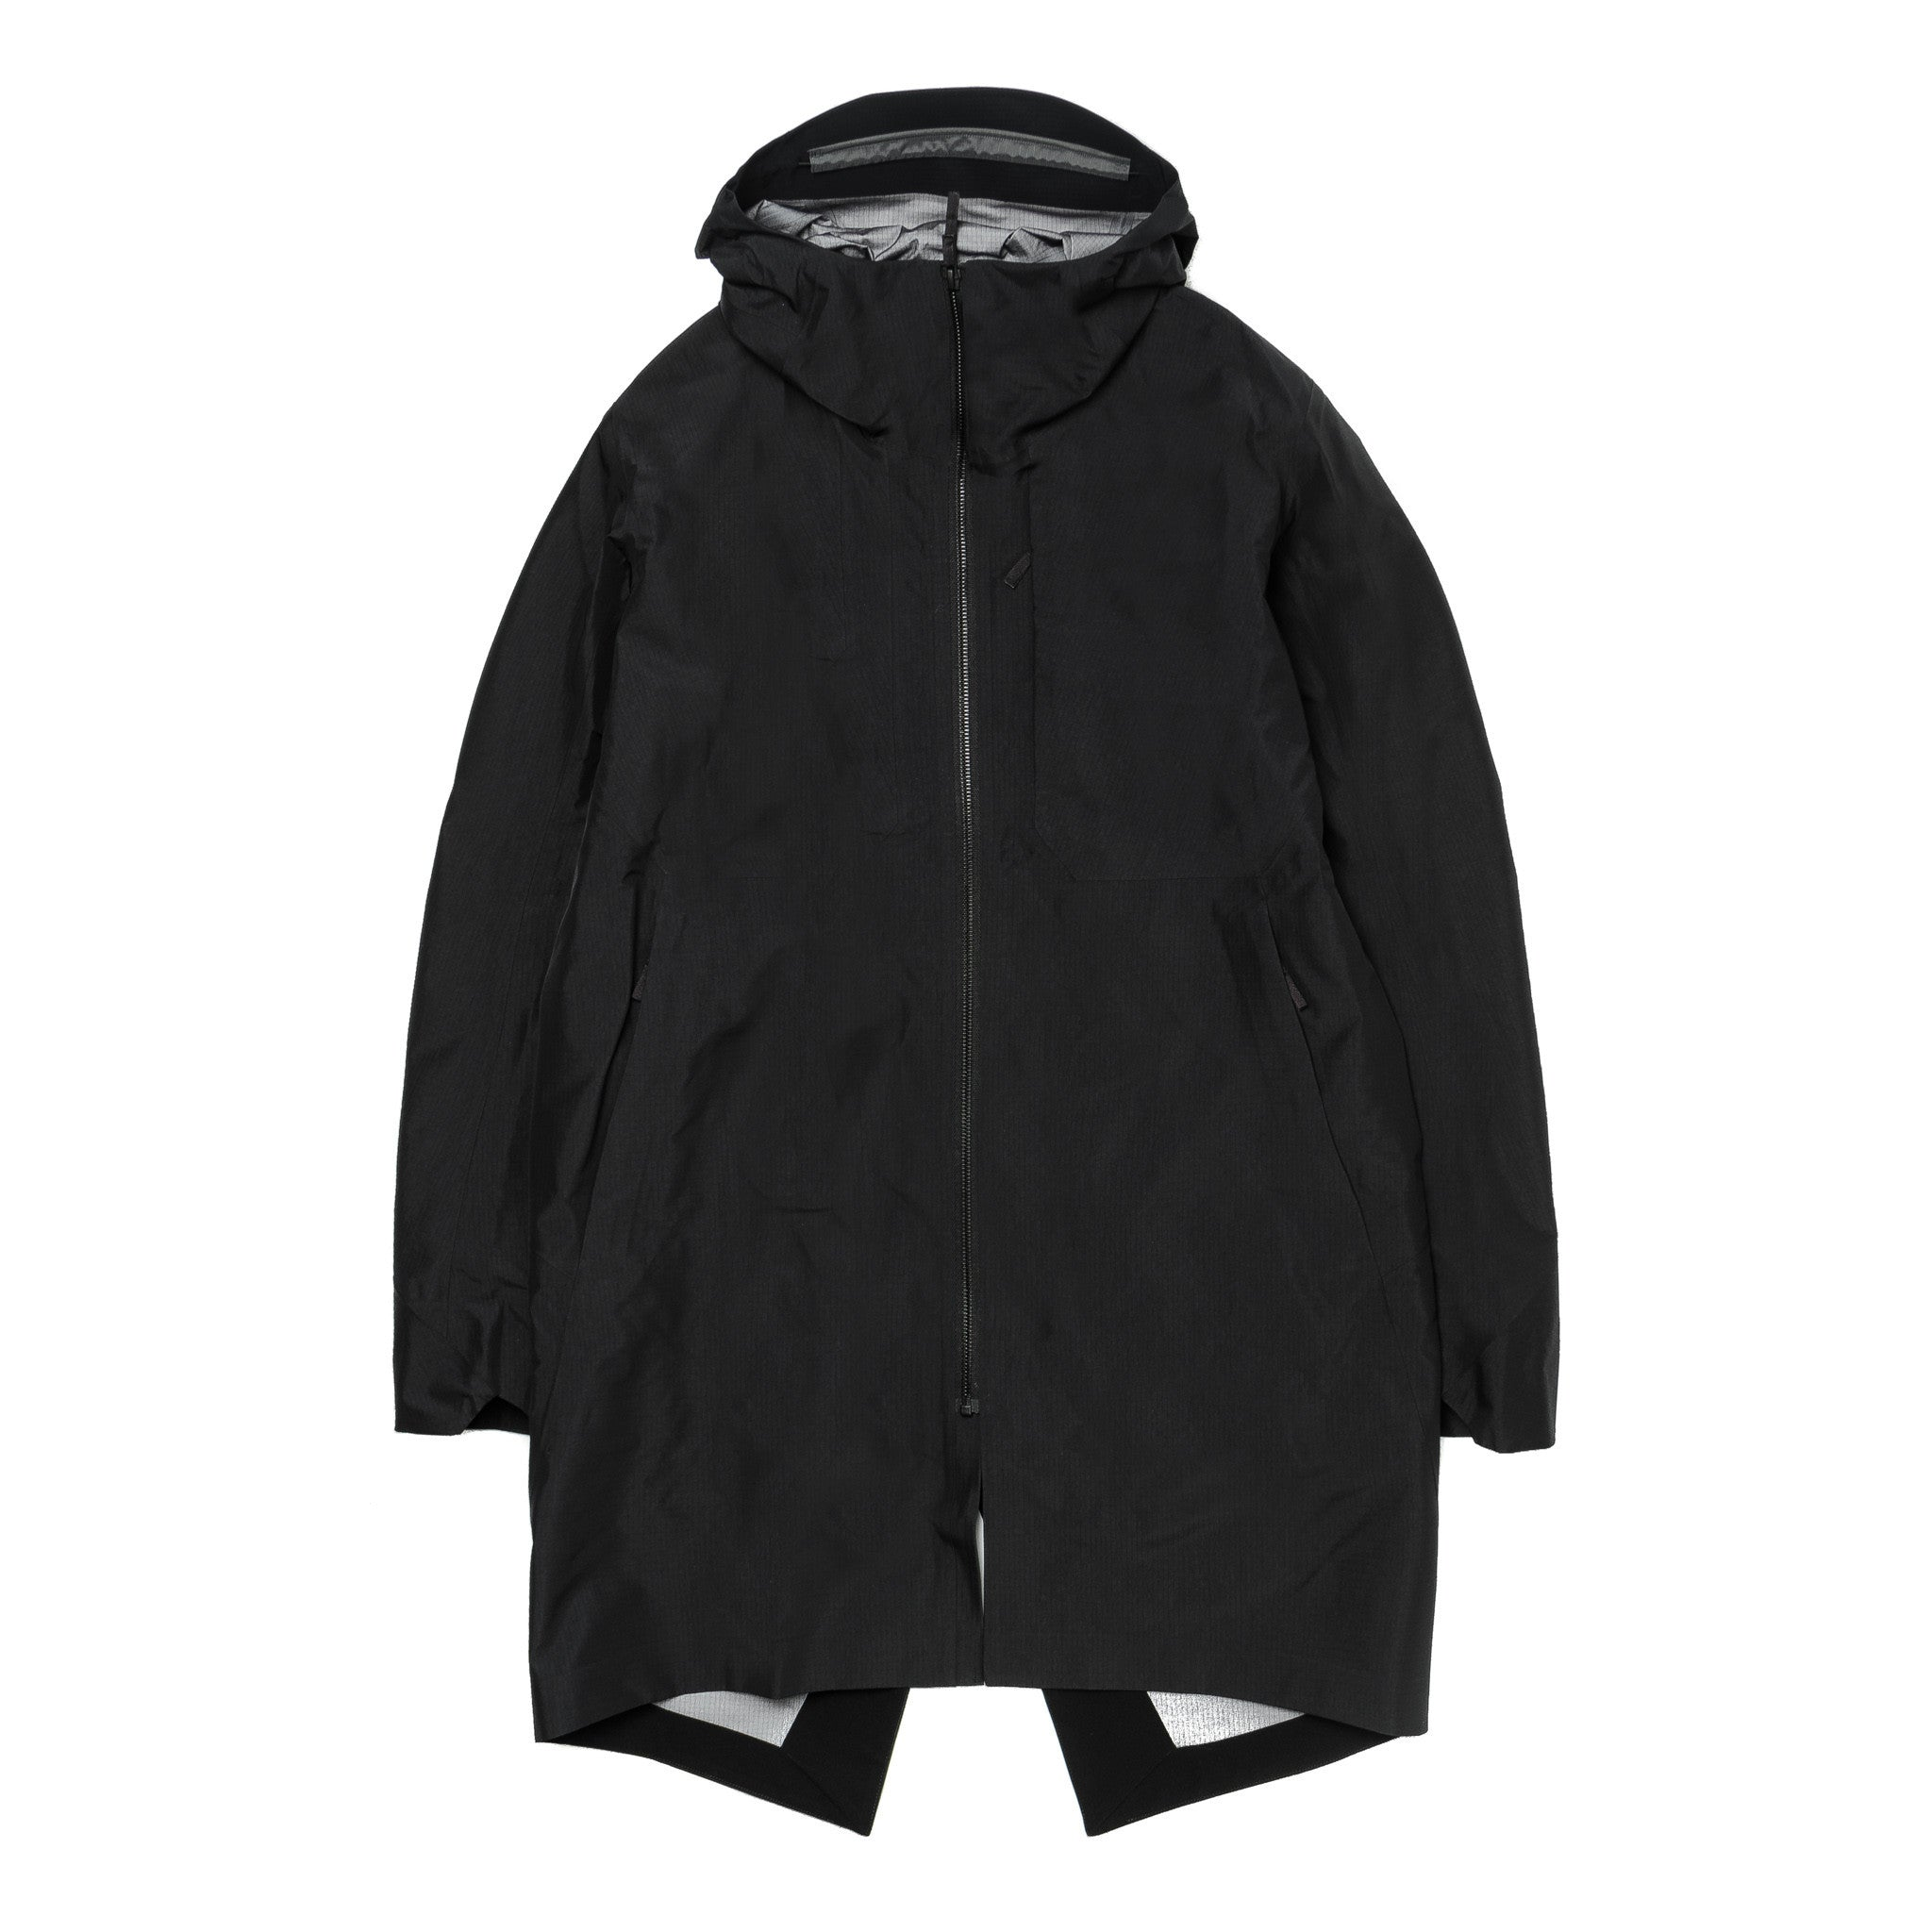 Monitor Coat 15641 Black